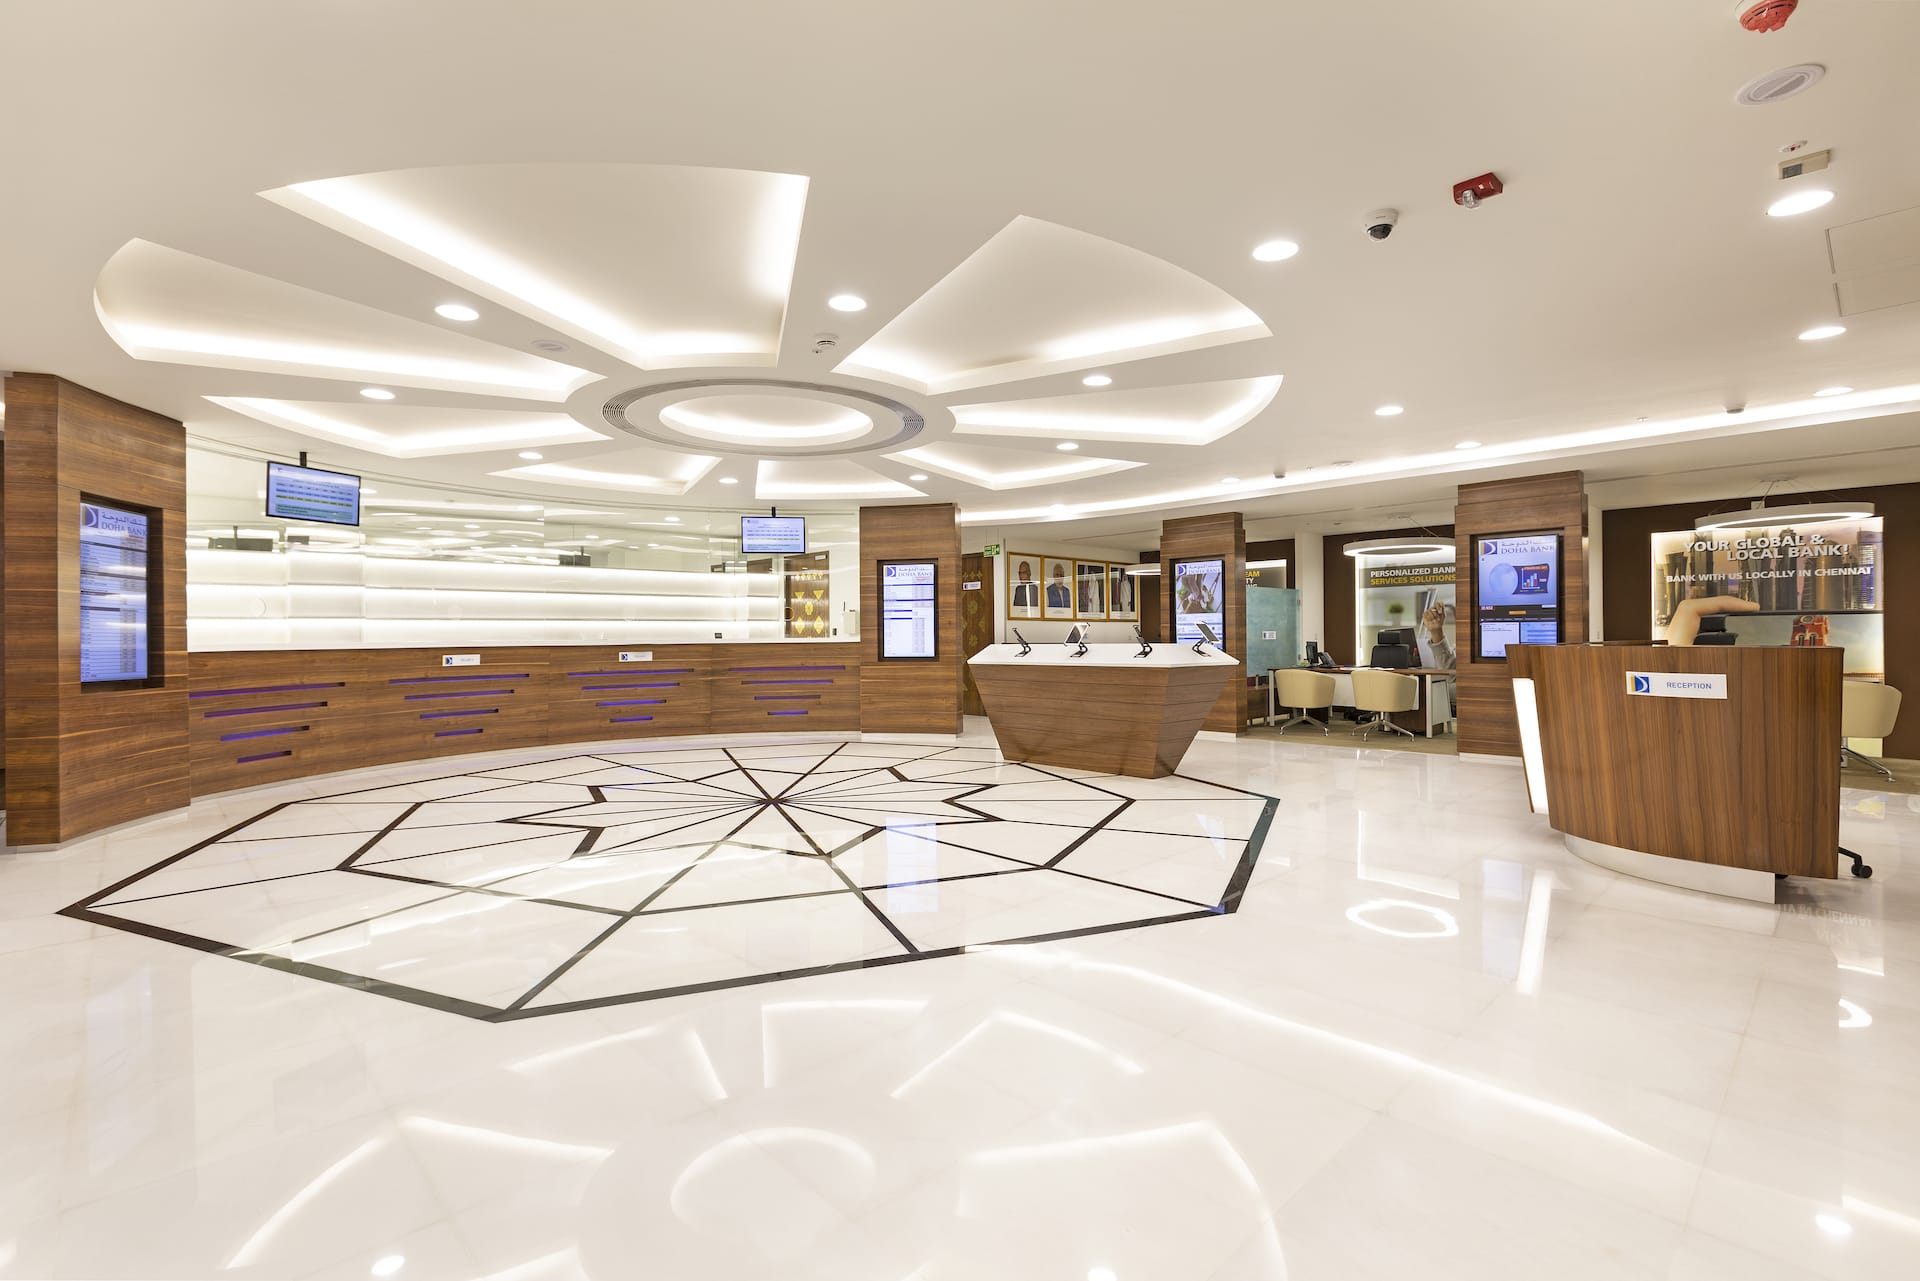 Doha Bank – Chennai